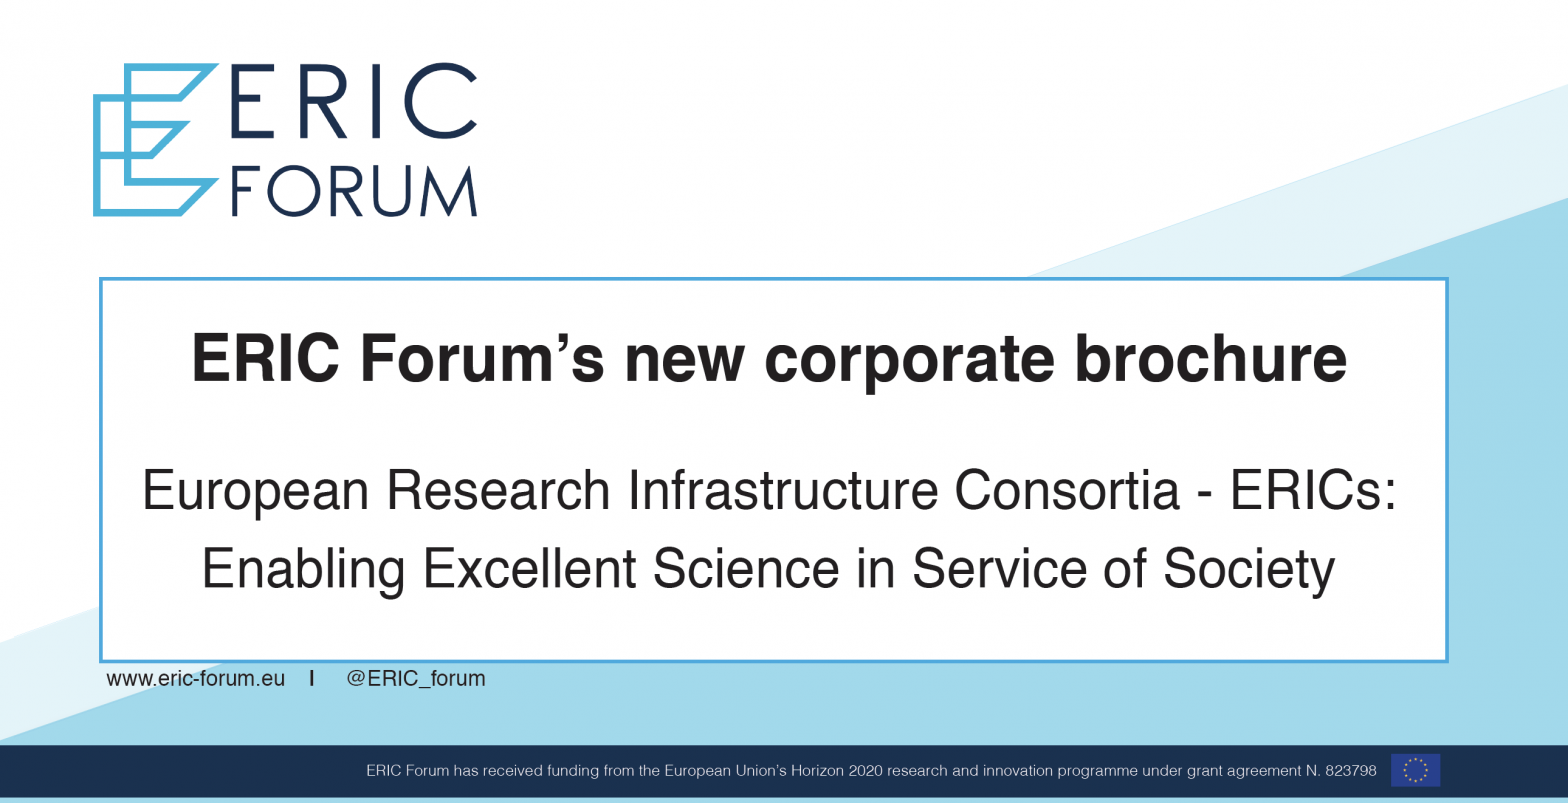 ERIC Forum's New Corporate Brochure